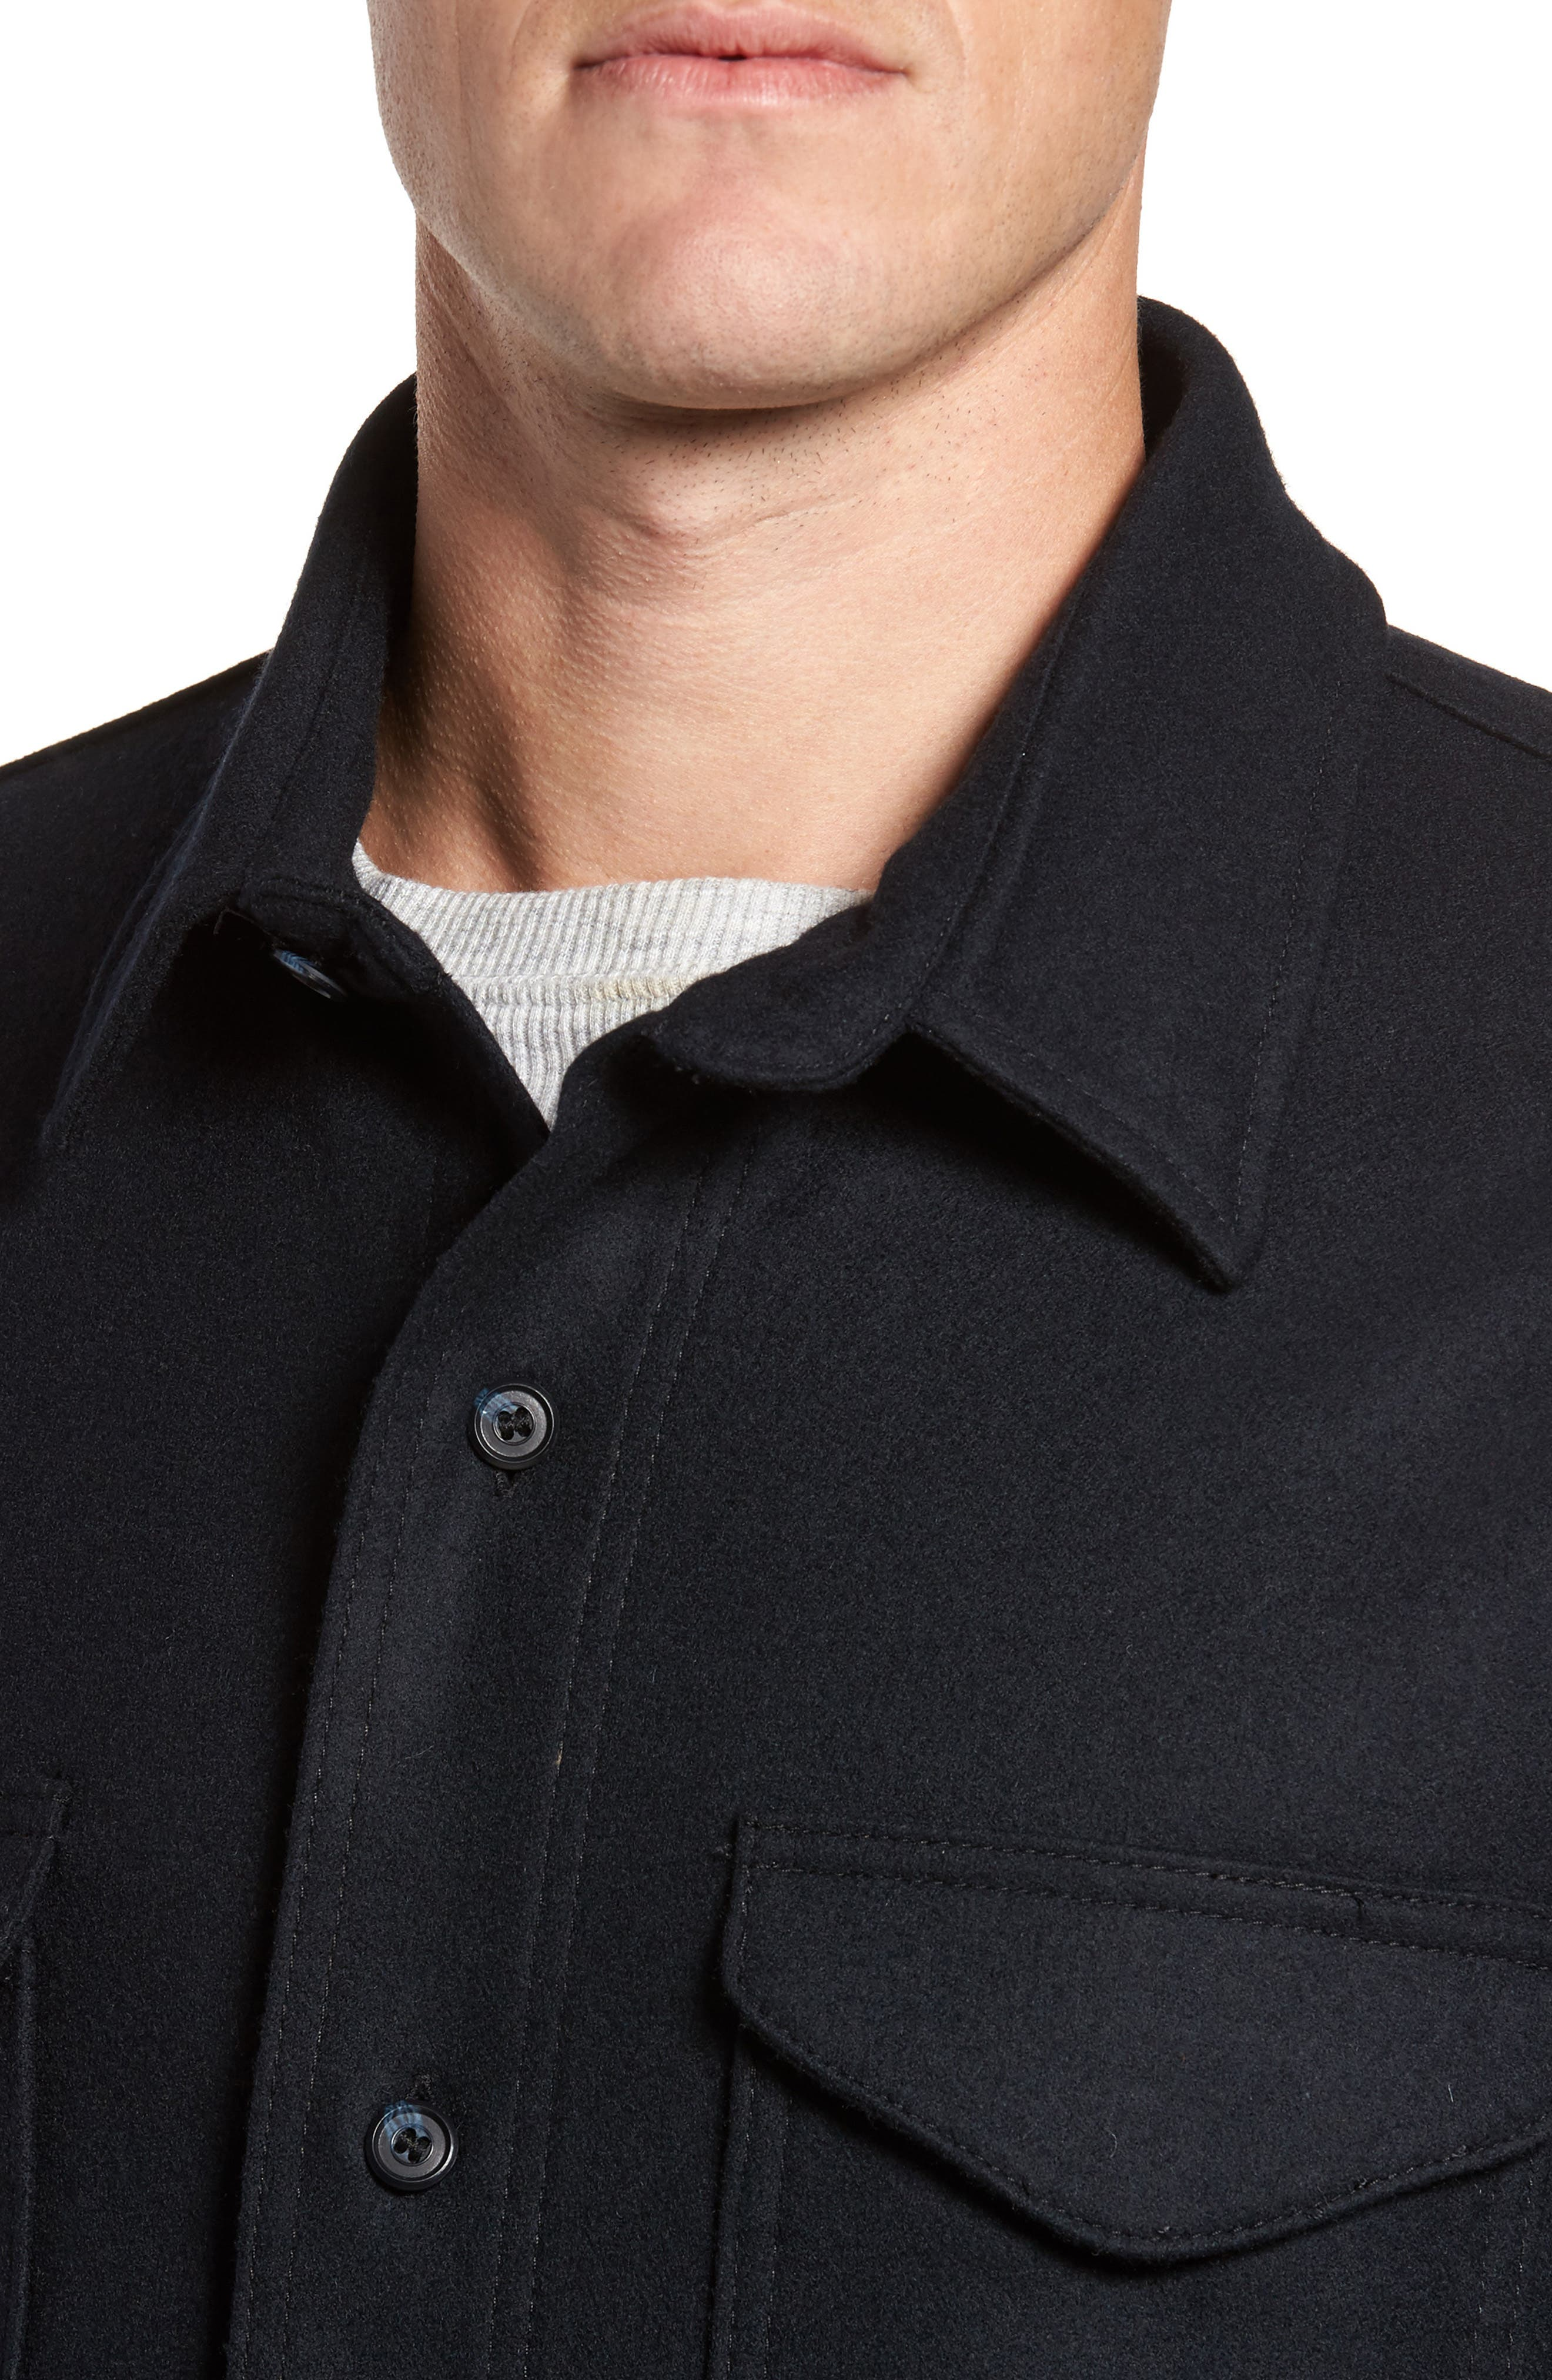 Jac-Shirt Wool Jacket,                             Alternate thumbnail 4, color,                             410